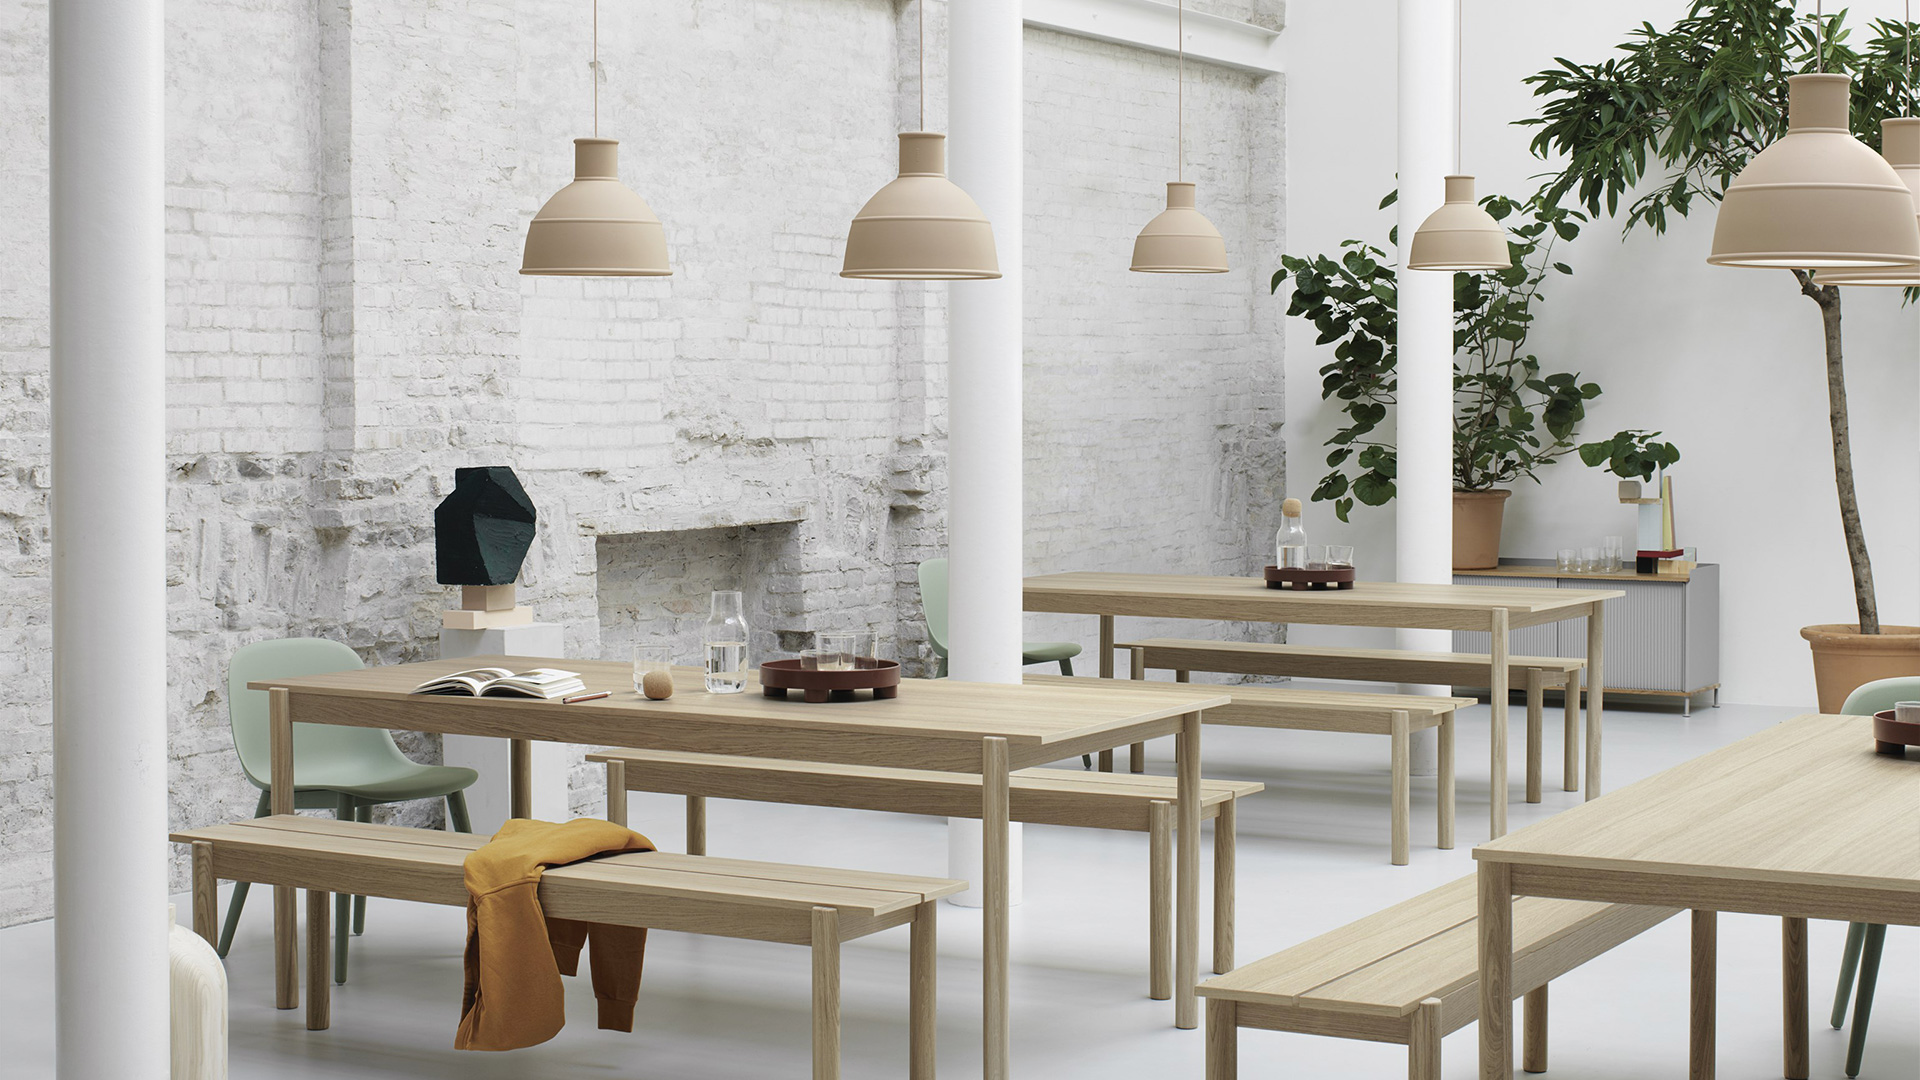 Unfold Pendant Lamp, Lifestyle